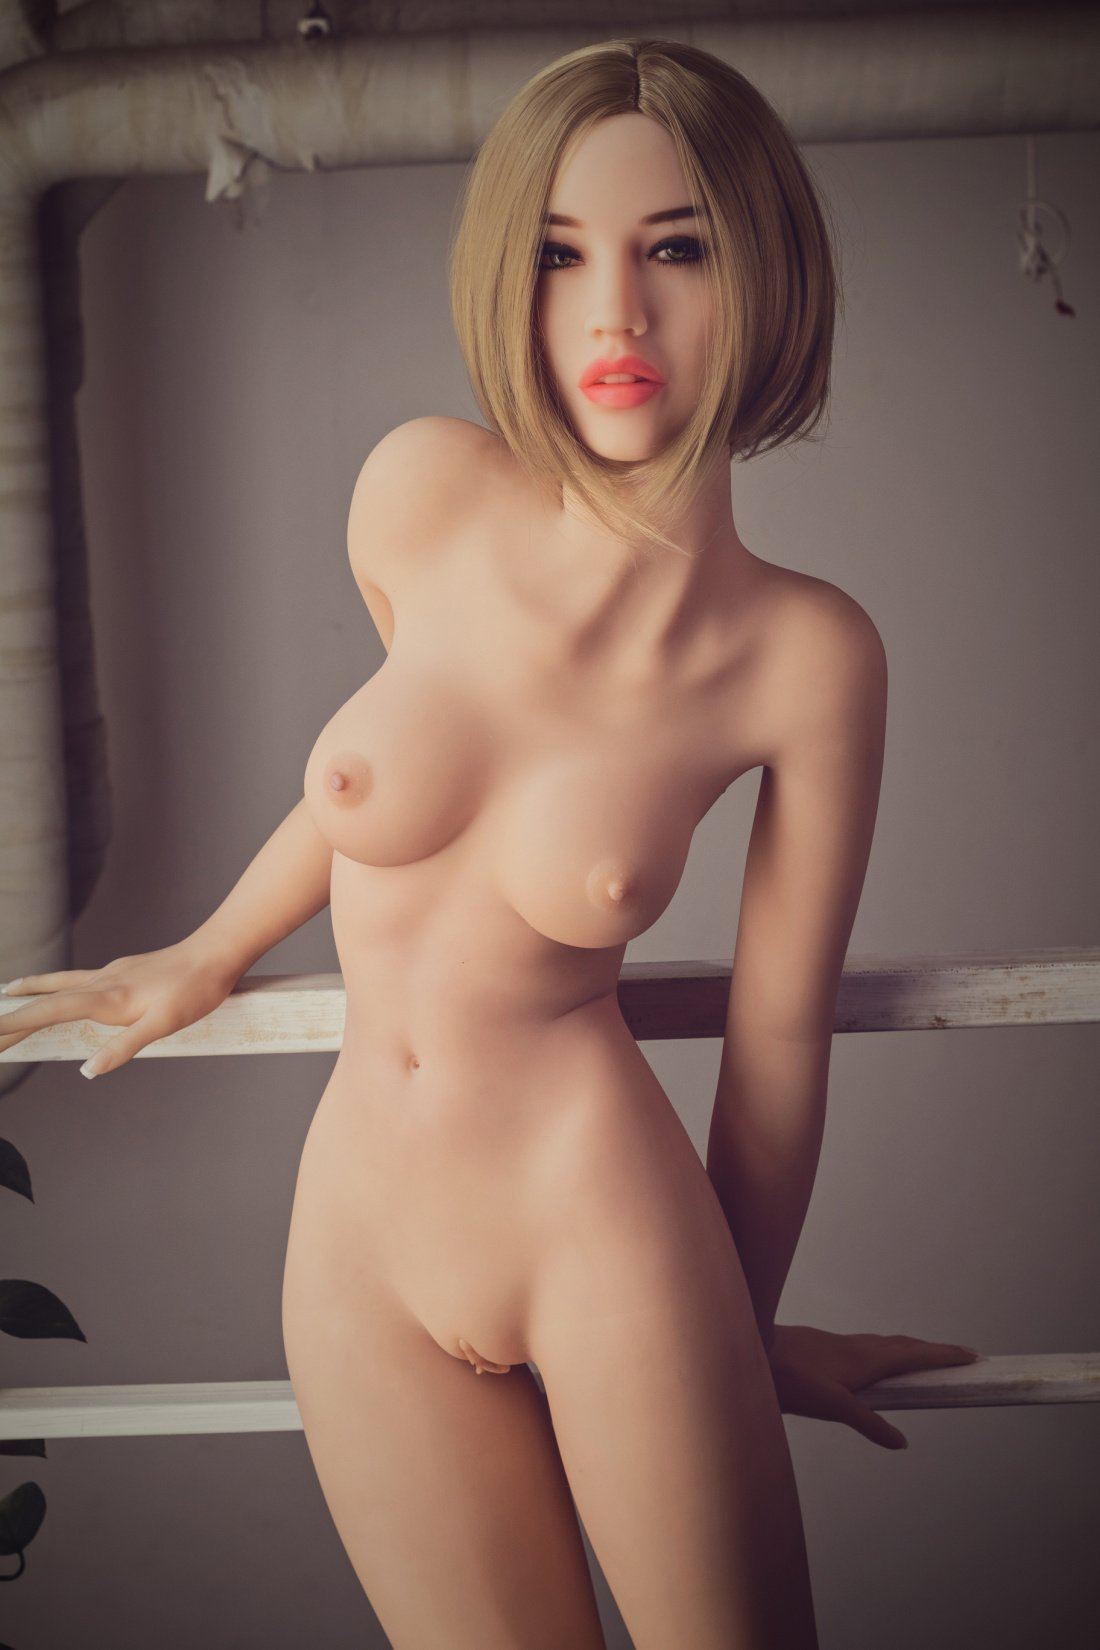 marylouise 157cm blonde skinny flat chested tpe wm sex doll(8)